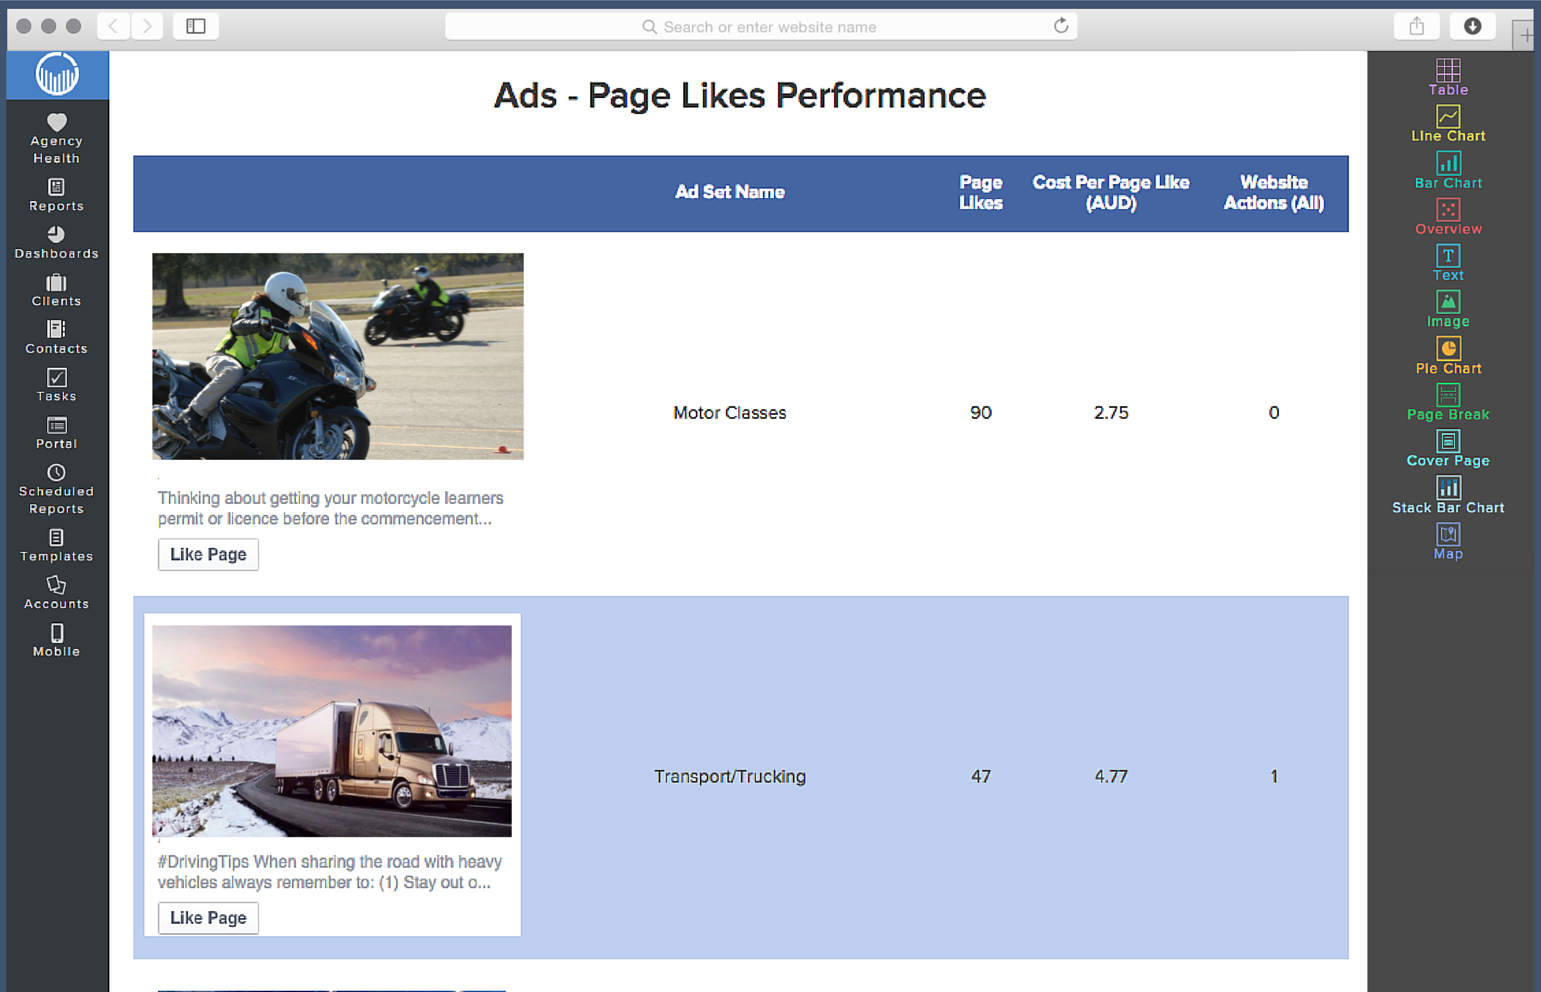 ReportGarden Software - ReportGarden Pages liked performance